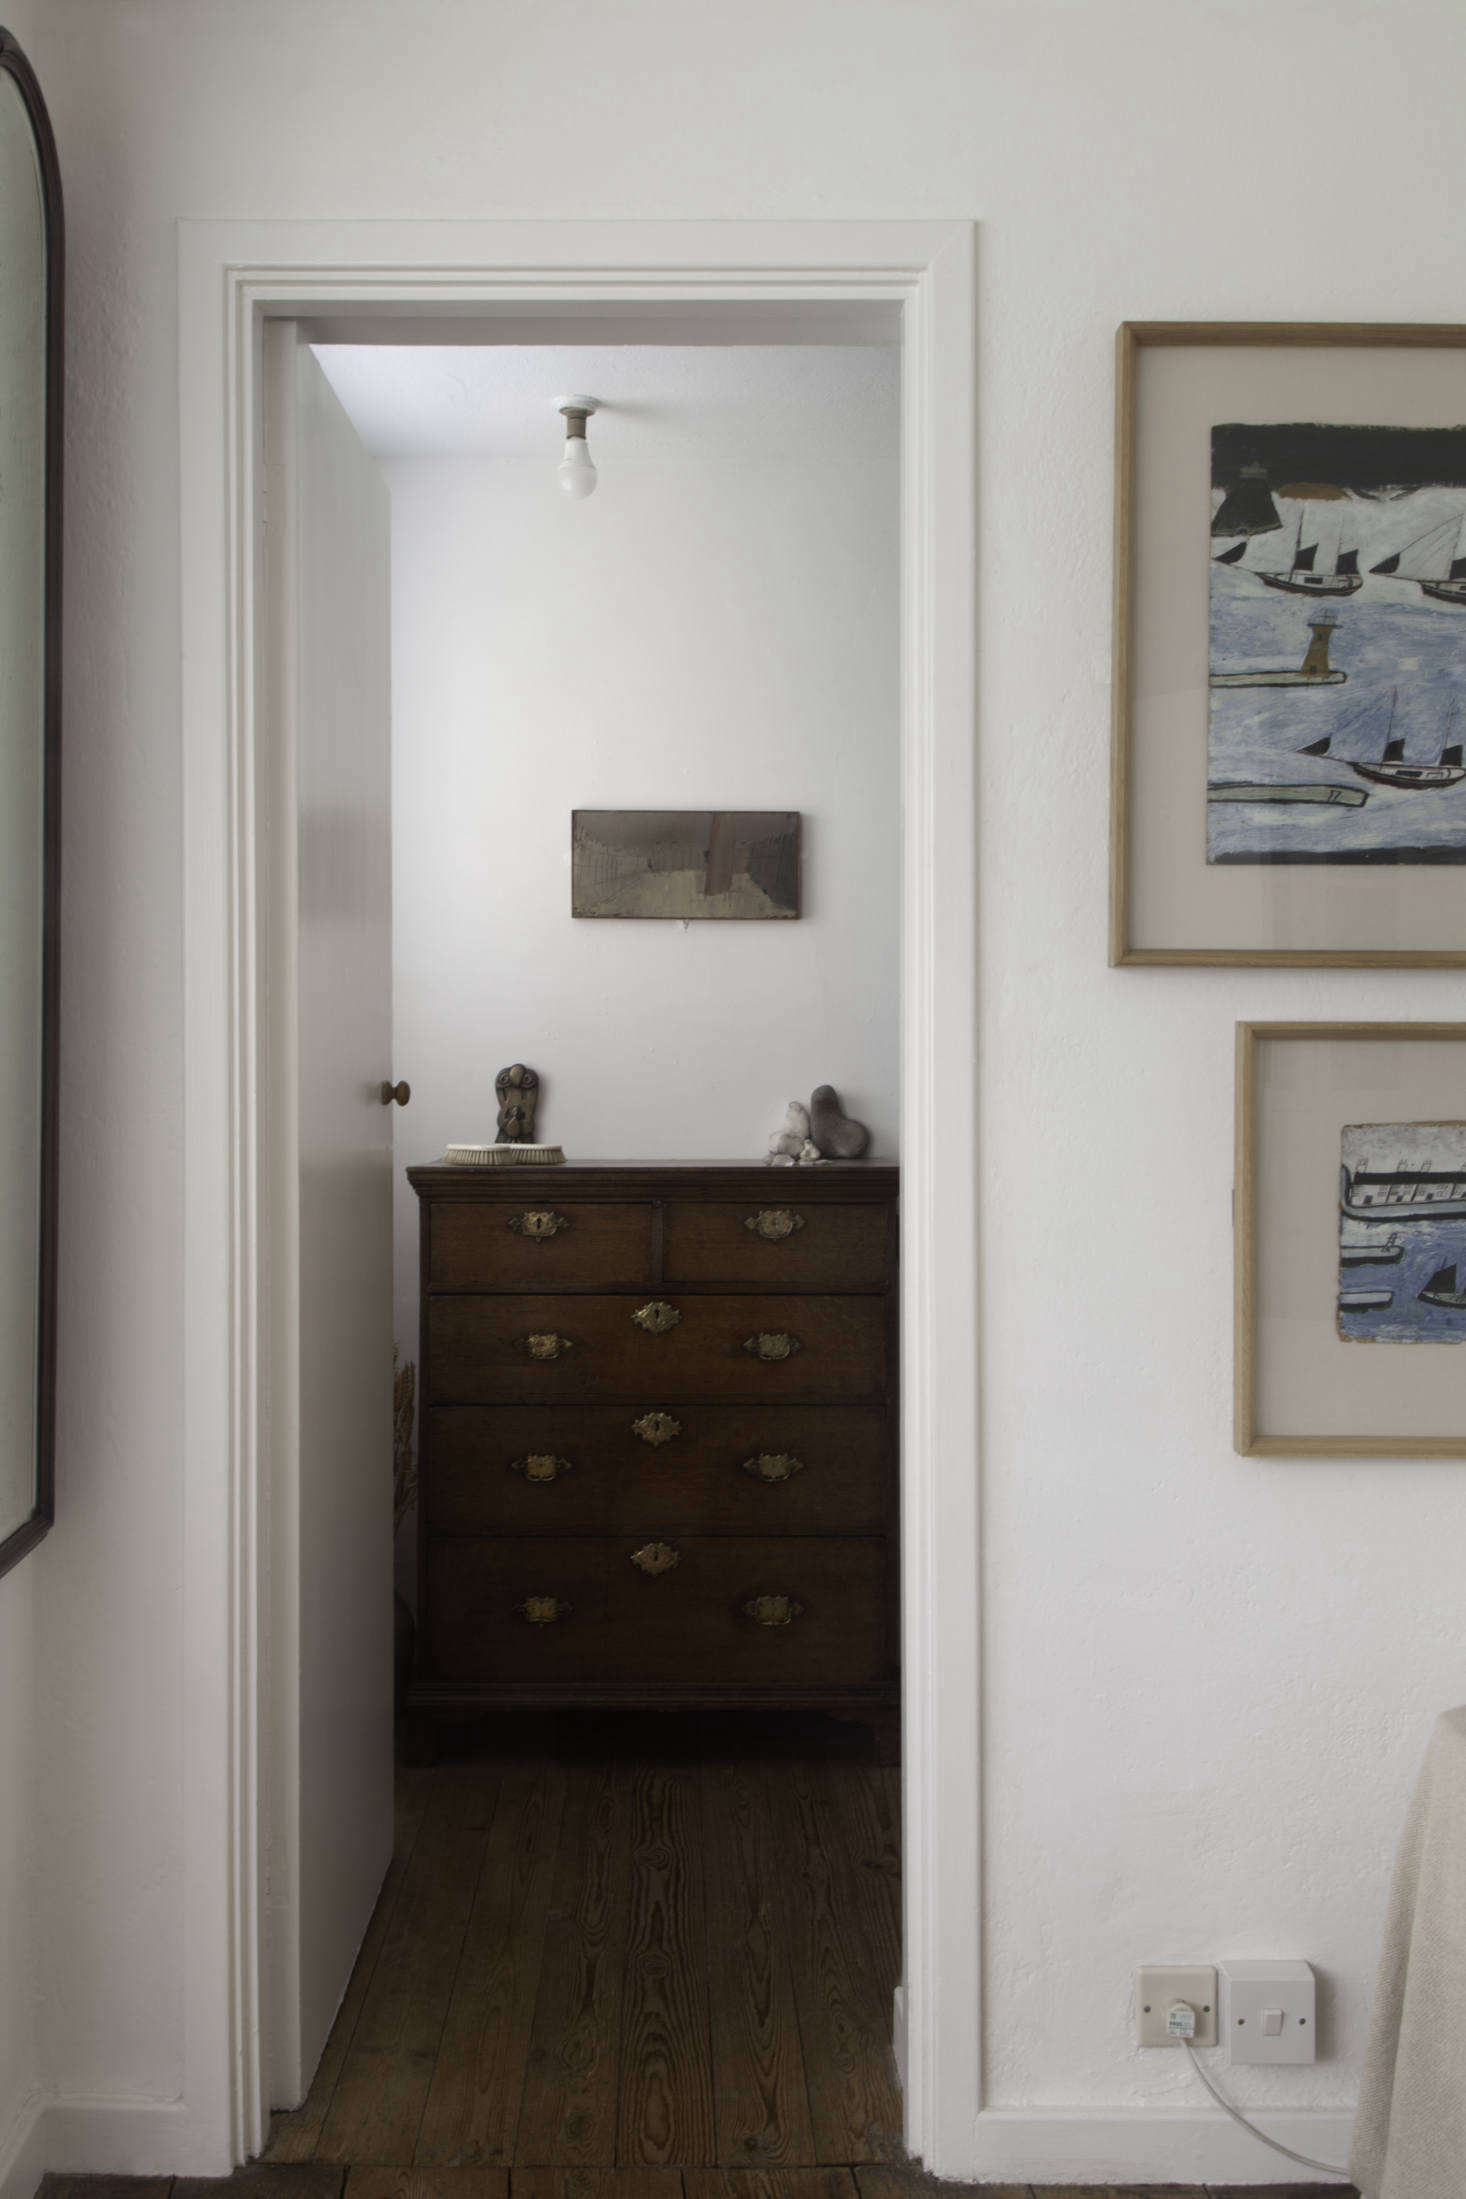 The Henri Gaudier-Brzeska brass Door-Knockersits on the dresser. On the wall is Piazza San Marco no. 5 by William Congdon.